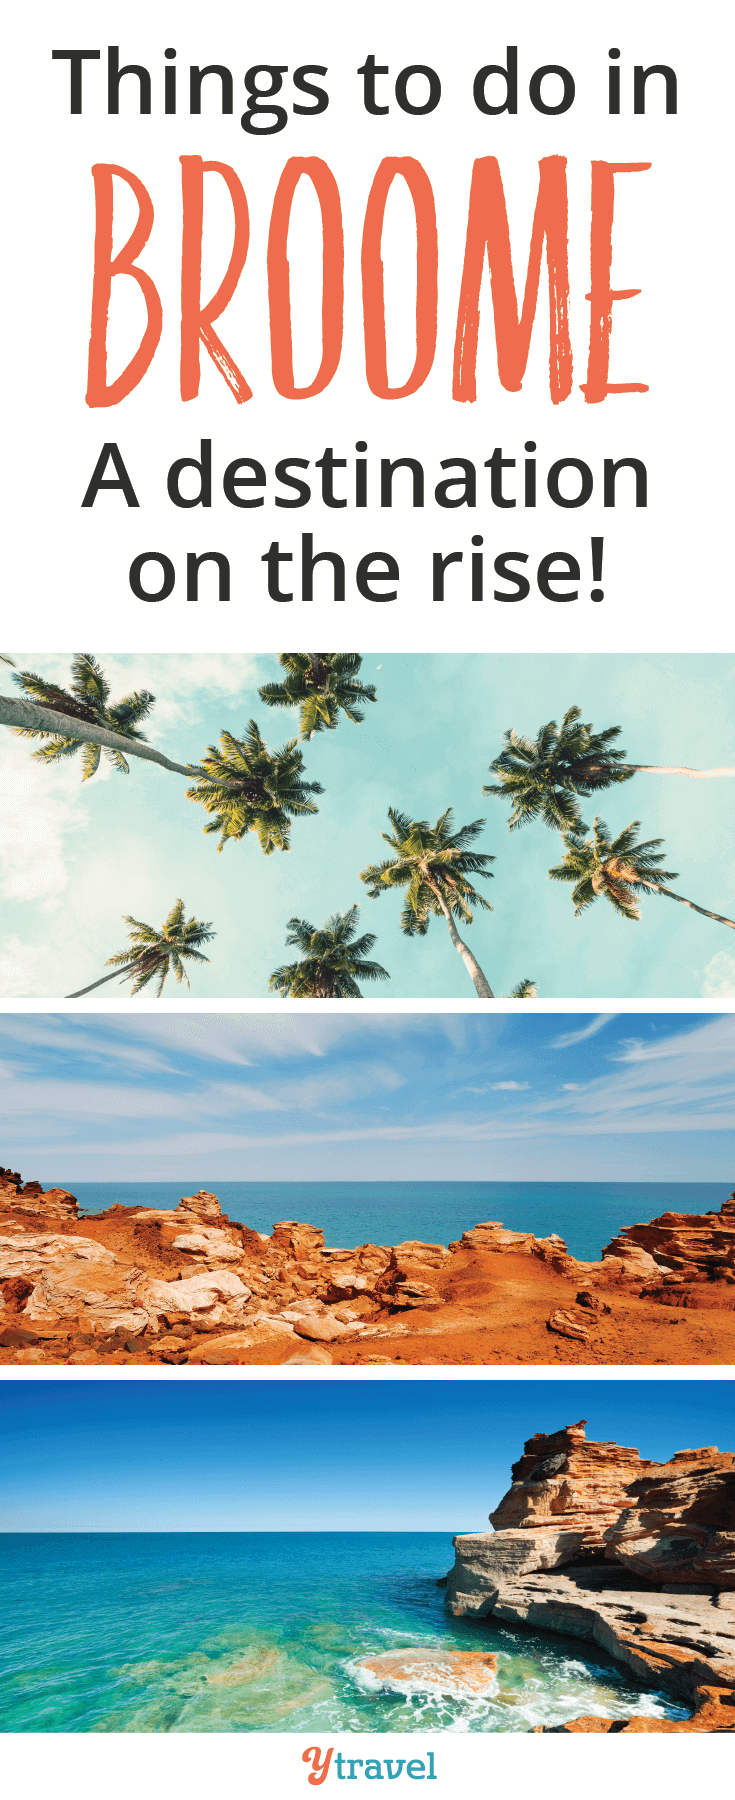 Explore this list of things to do in Broome, Western Australia. A destination on the rise!